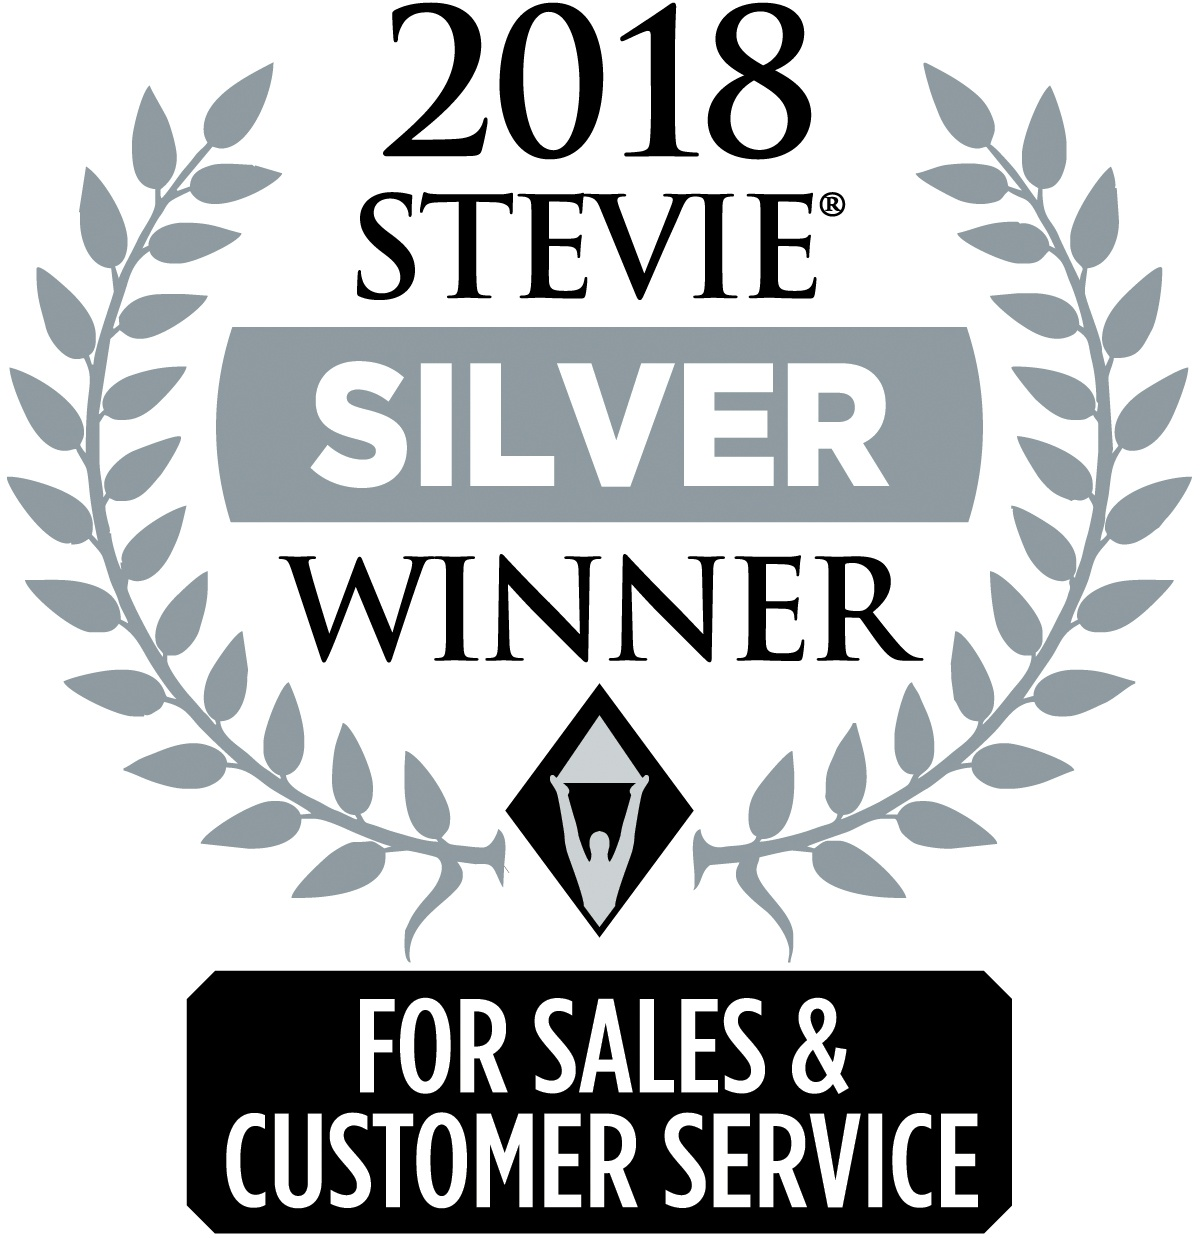 The Stevie Awards for Sales and Customer Service